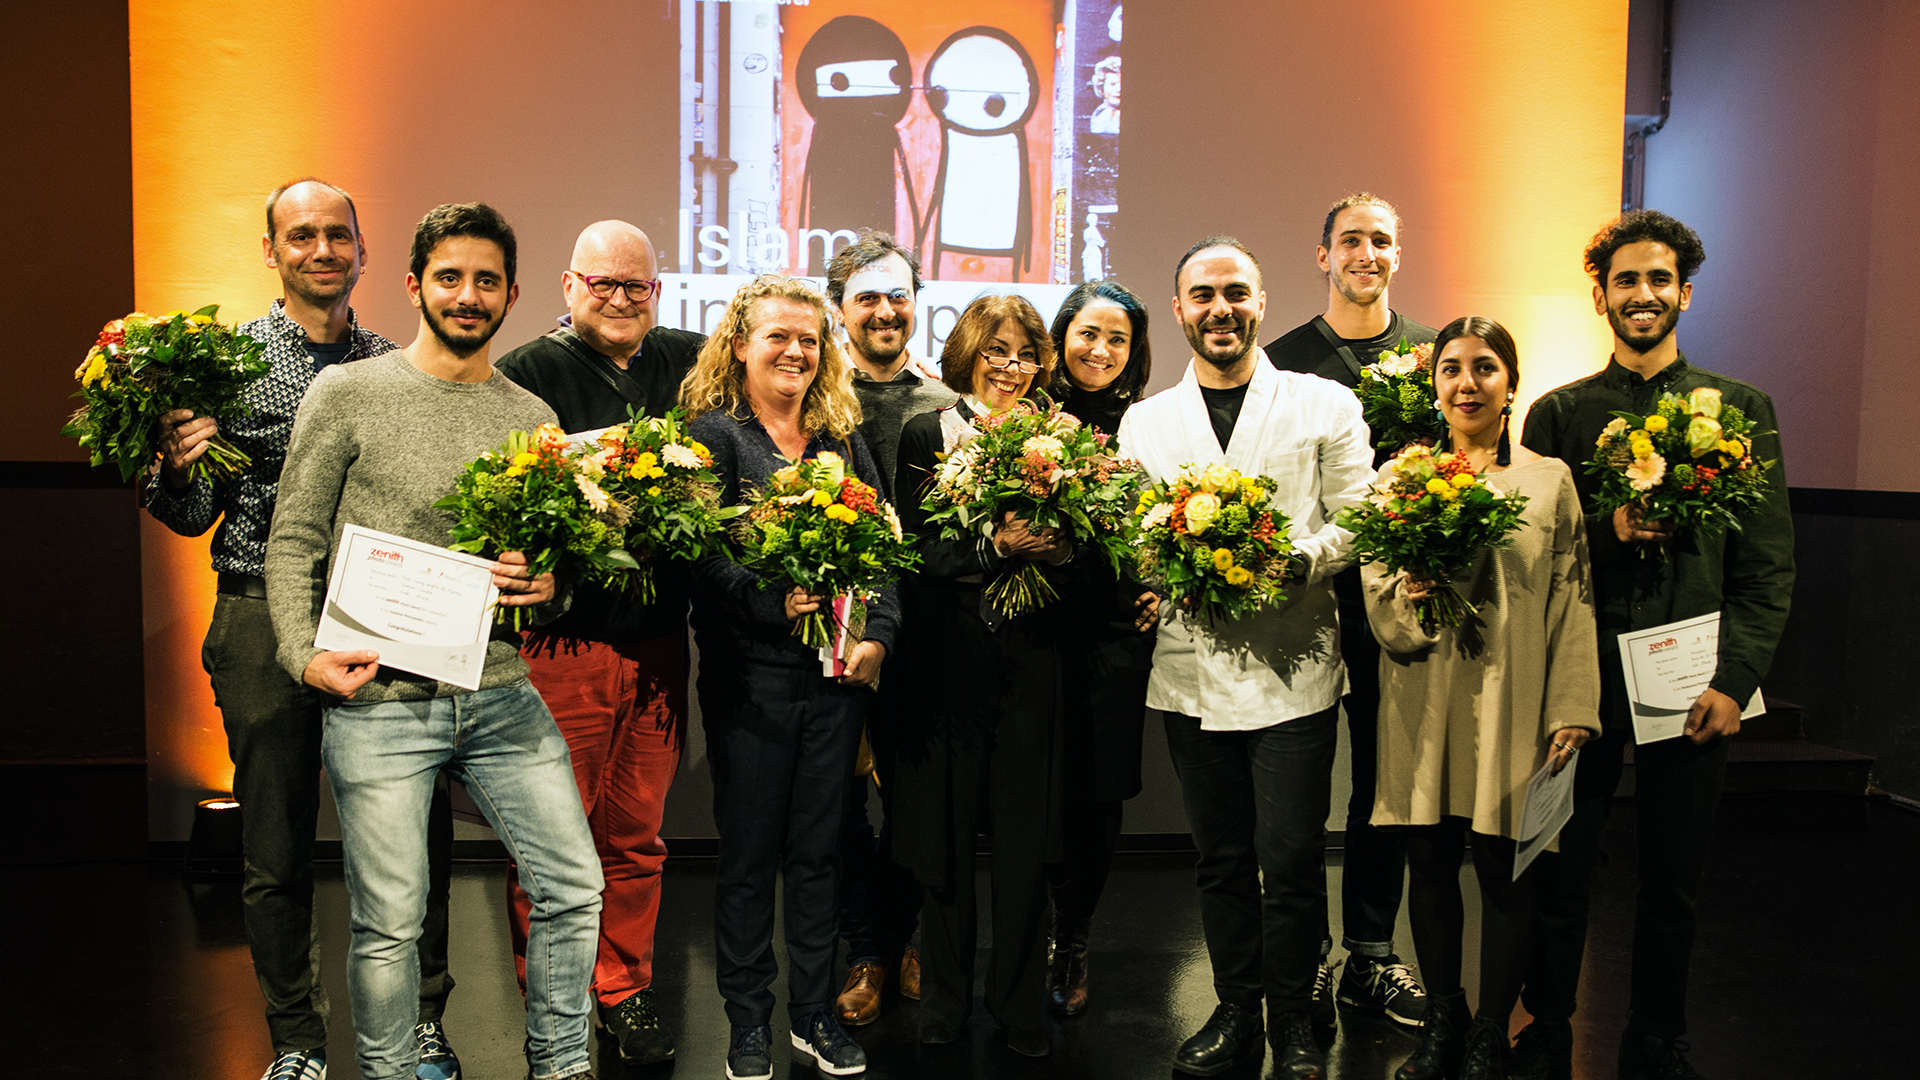 Shortlisted photographers and jury members at the award ceremony 15 November 2017 at the Museum at the Kulturbrauerei in Berlin.